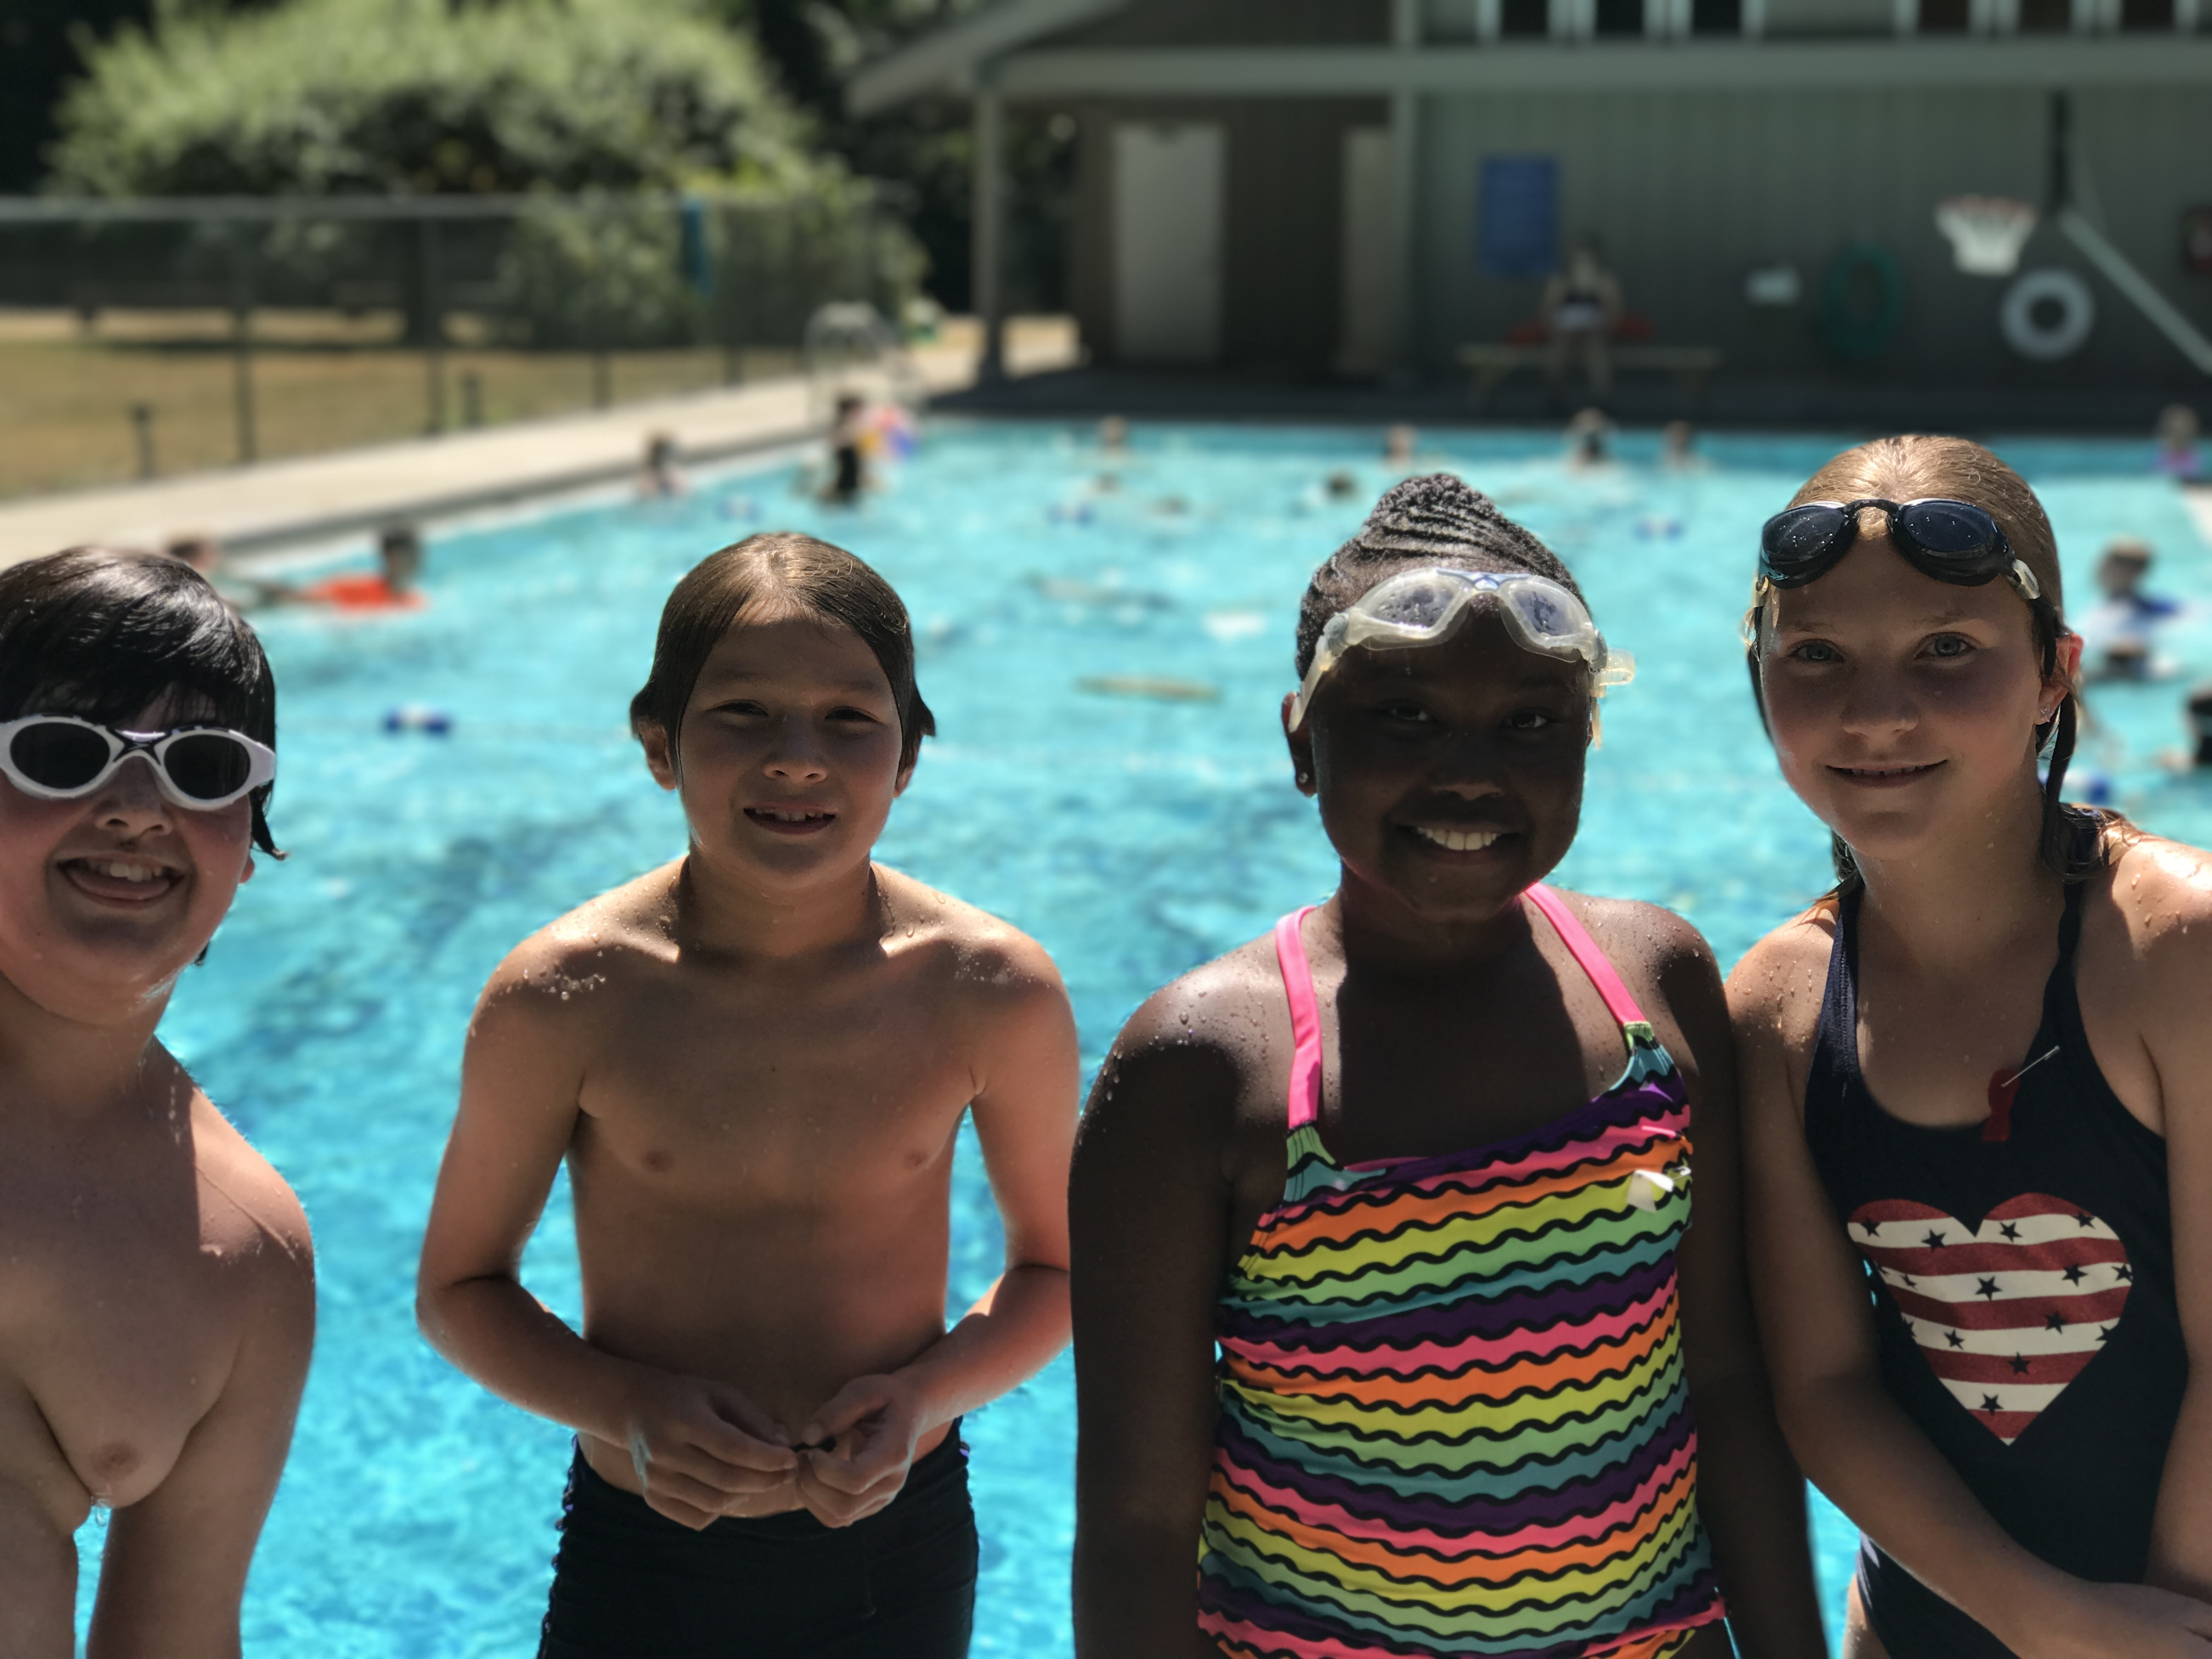 About Camp Huston - a brief description of facilities and programs